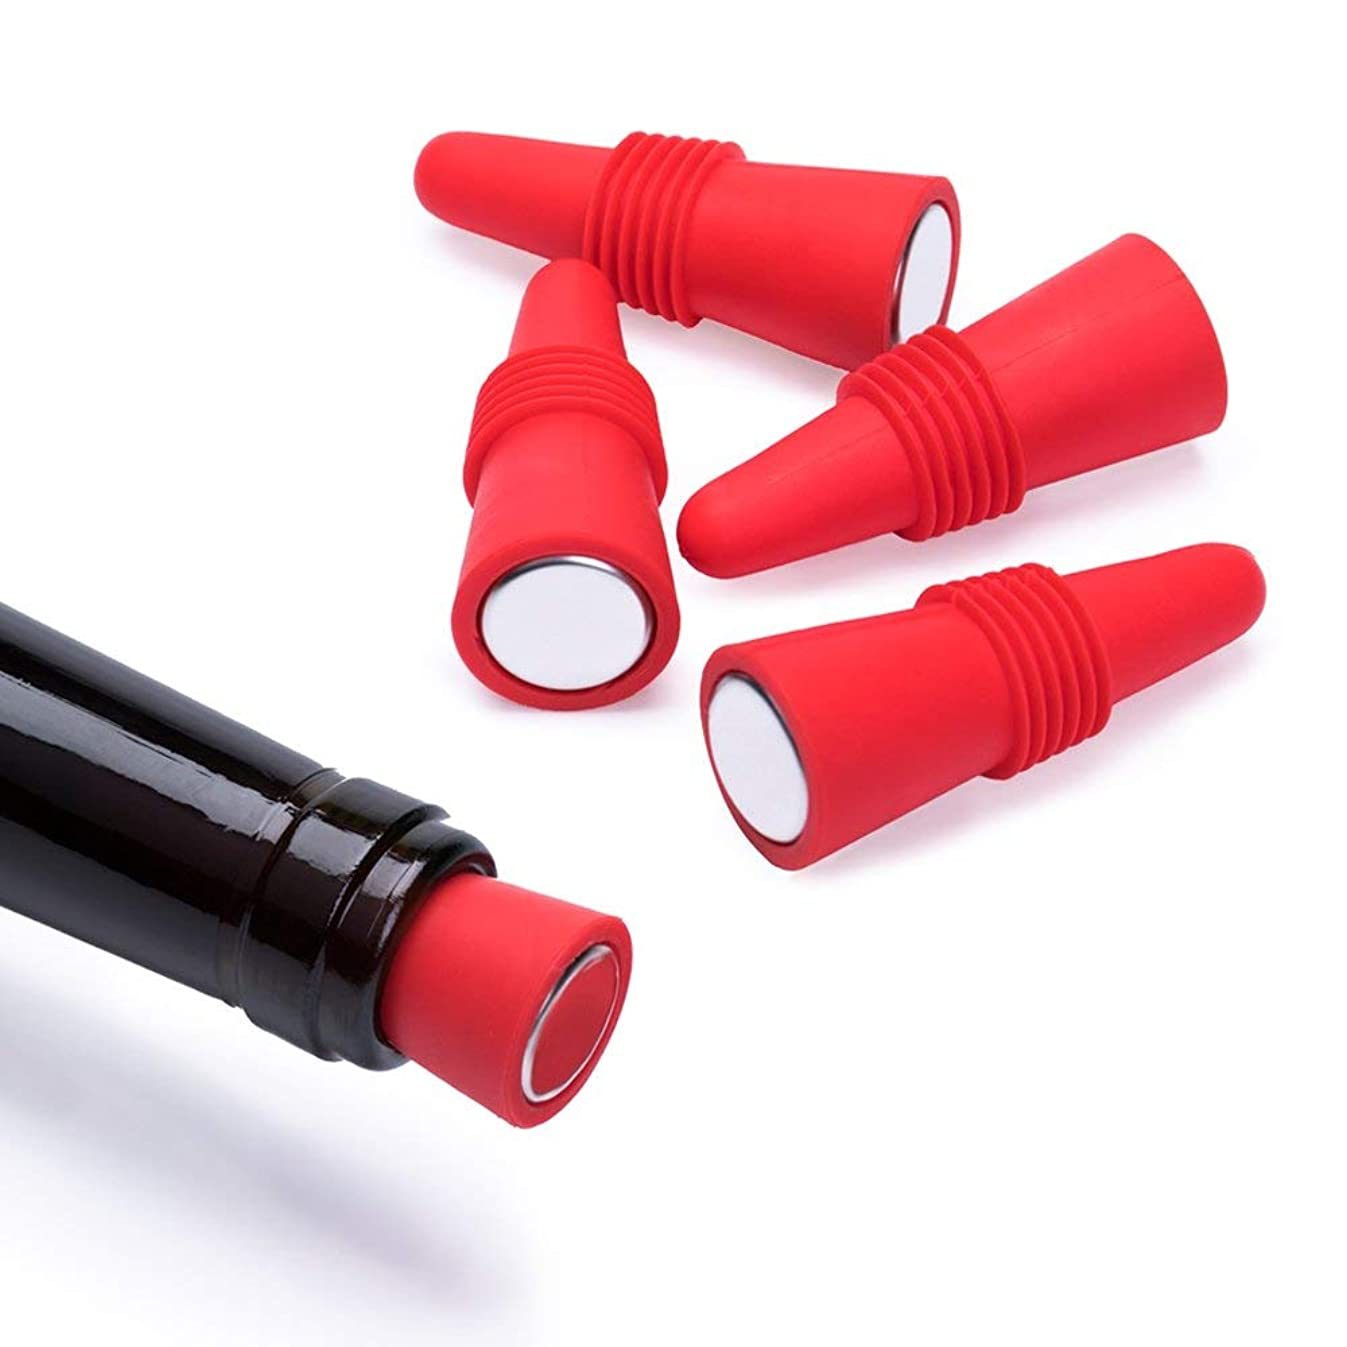 OHMAXHO Wine Stoppers (Set of 5), Silicone Reusable Wine Bottle stopper and Beverage Bottle Stoppers, Red